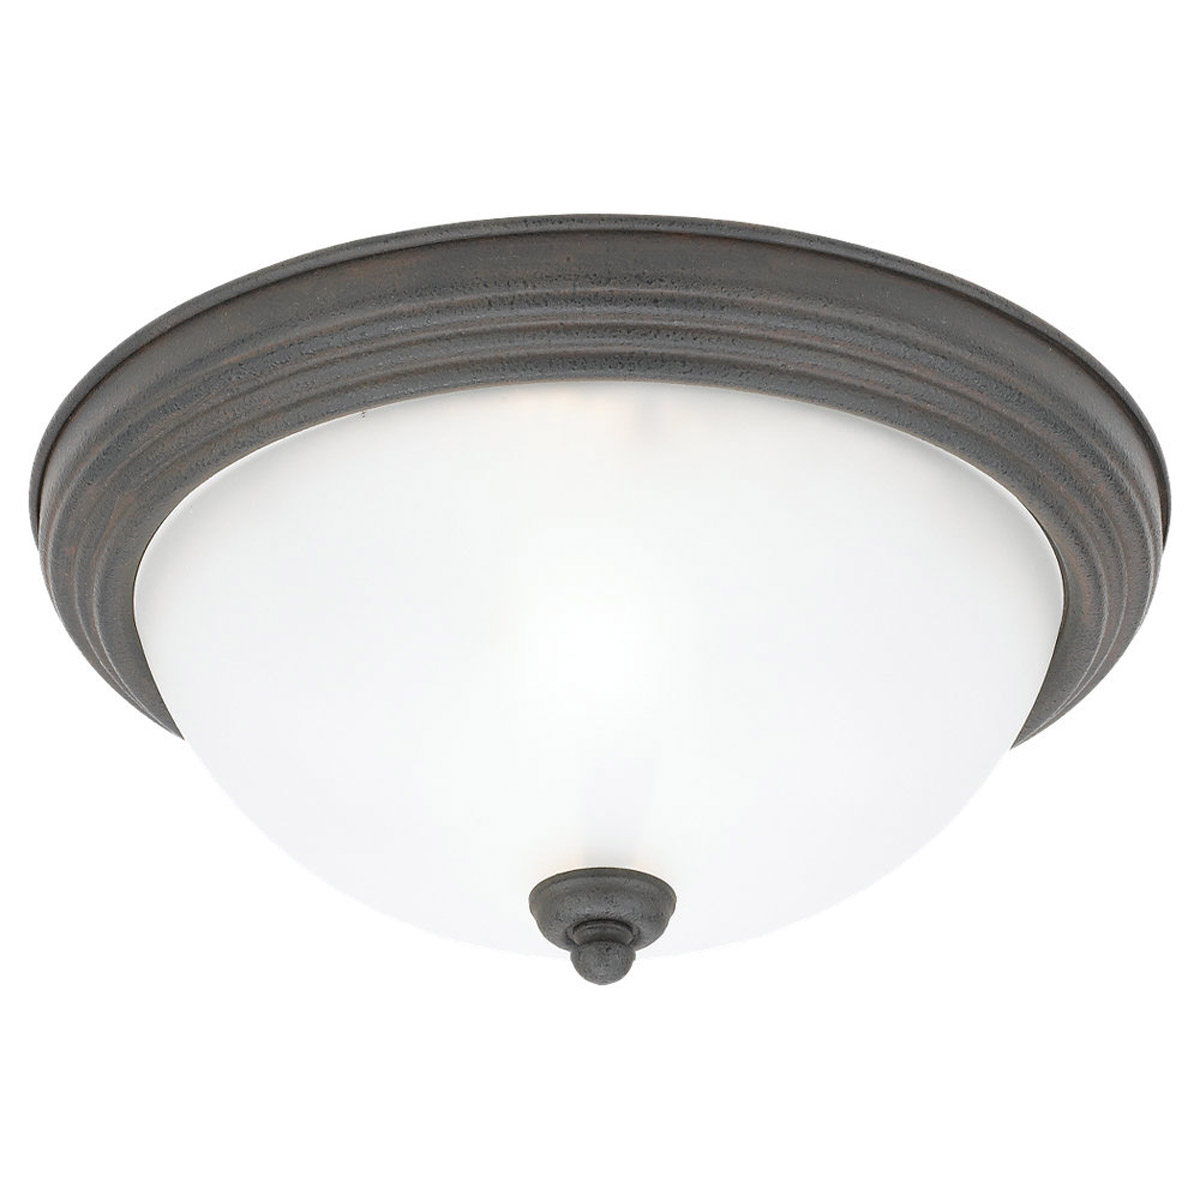 Sea Gull Lighting Pemberton 2 Light Flush Mount in Peppercorn 77064-799